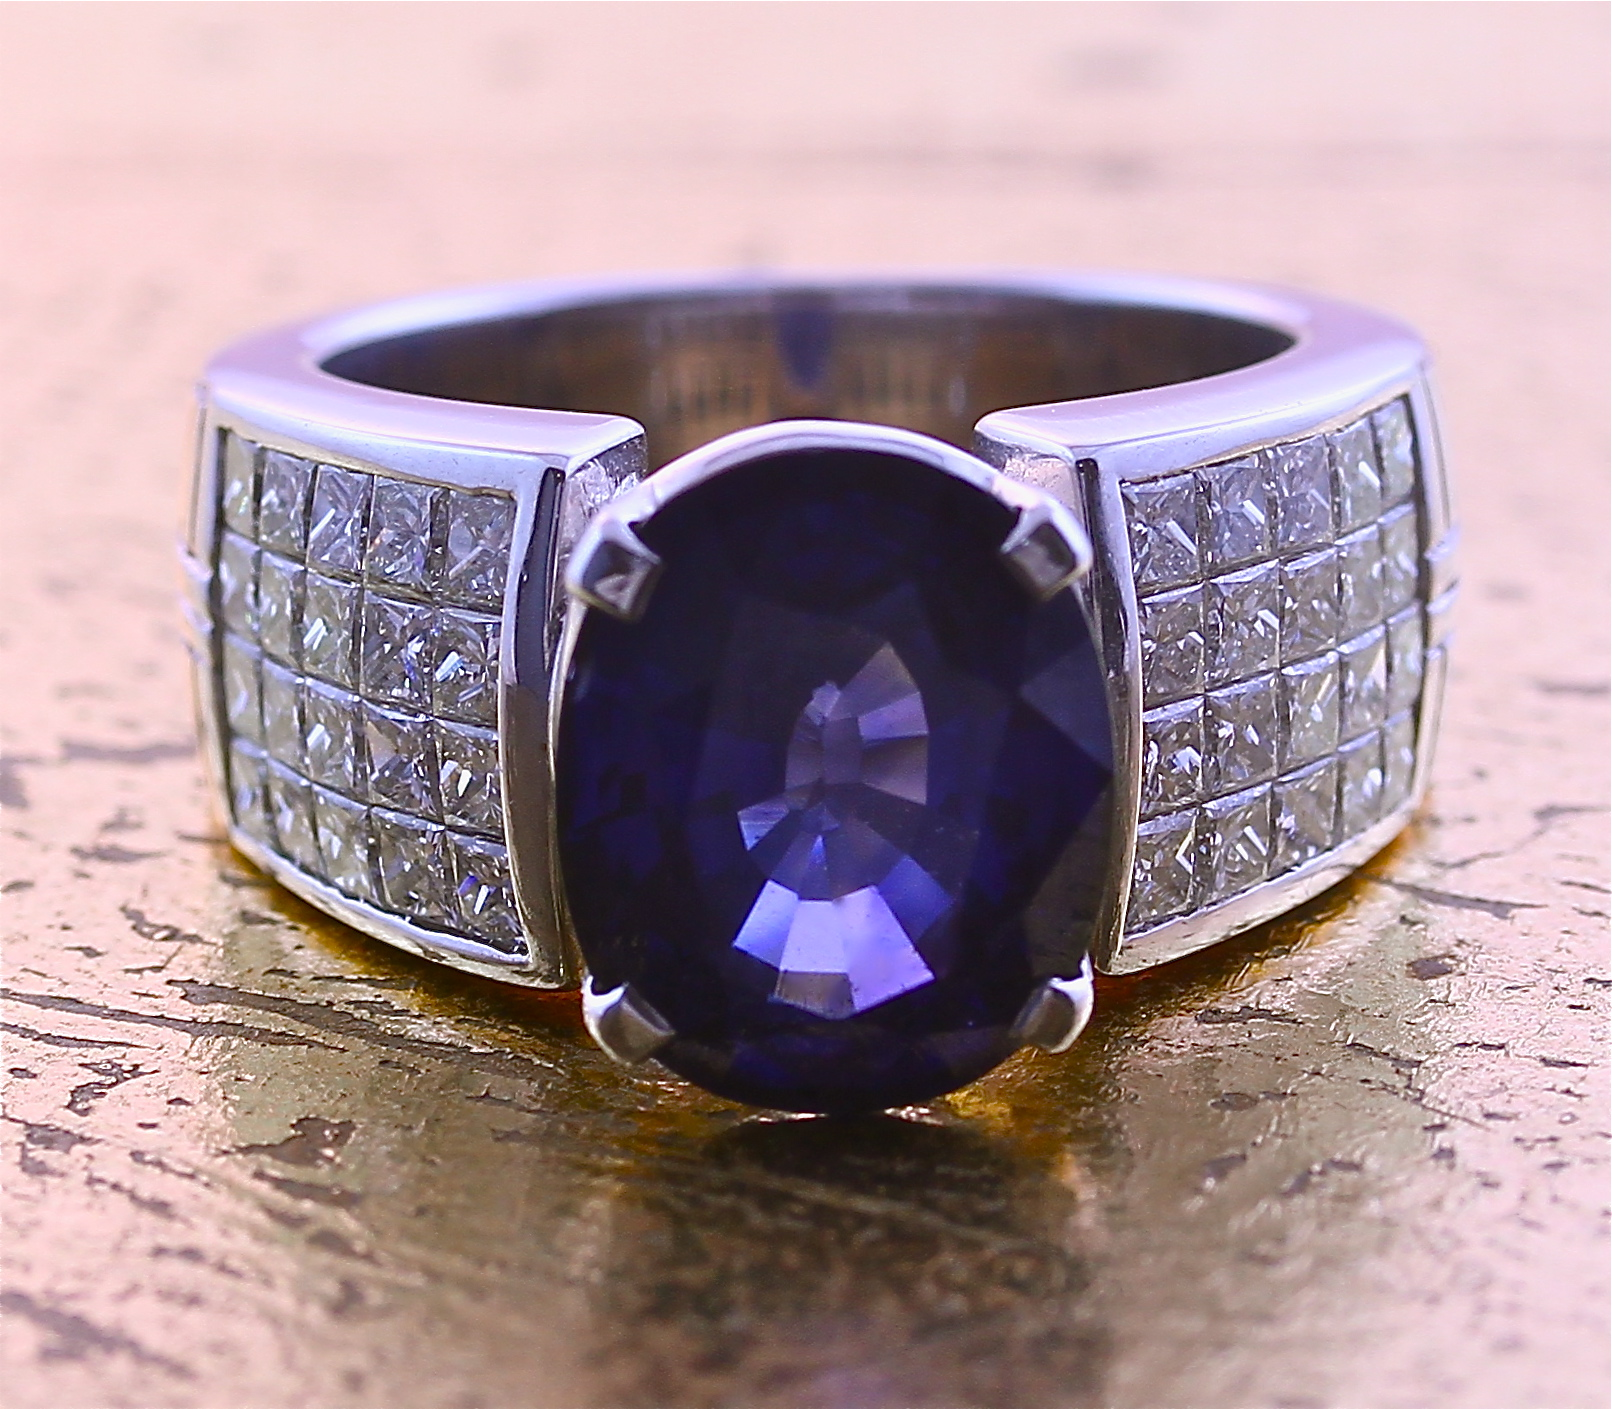 Sapphire Ring with 4 Rows of Princess Cut Diamonds in Invisible Setting - Item No: 0010305